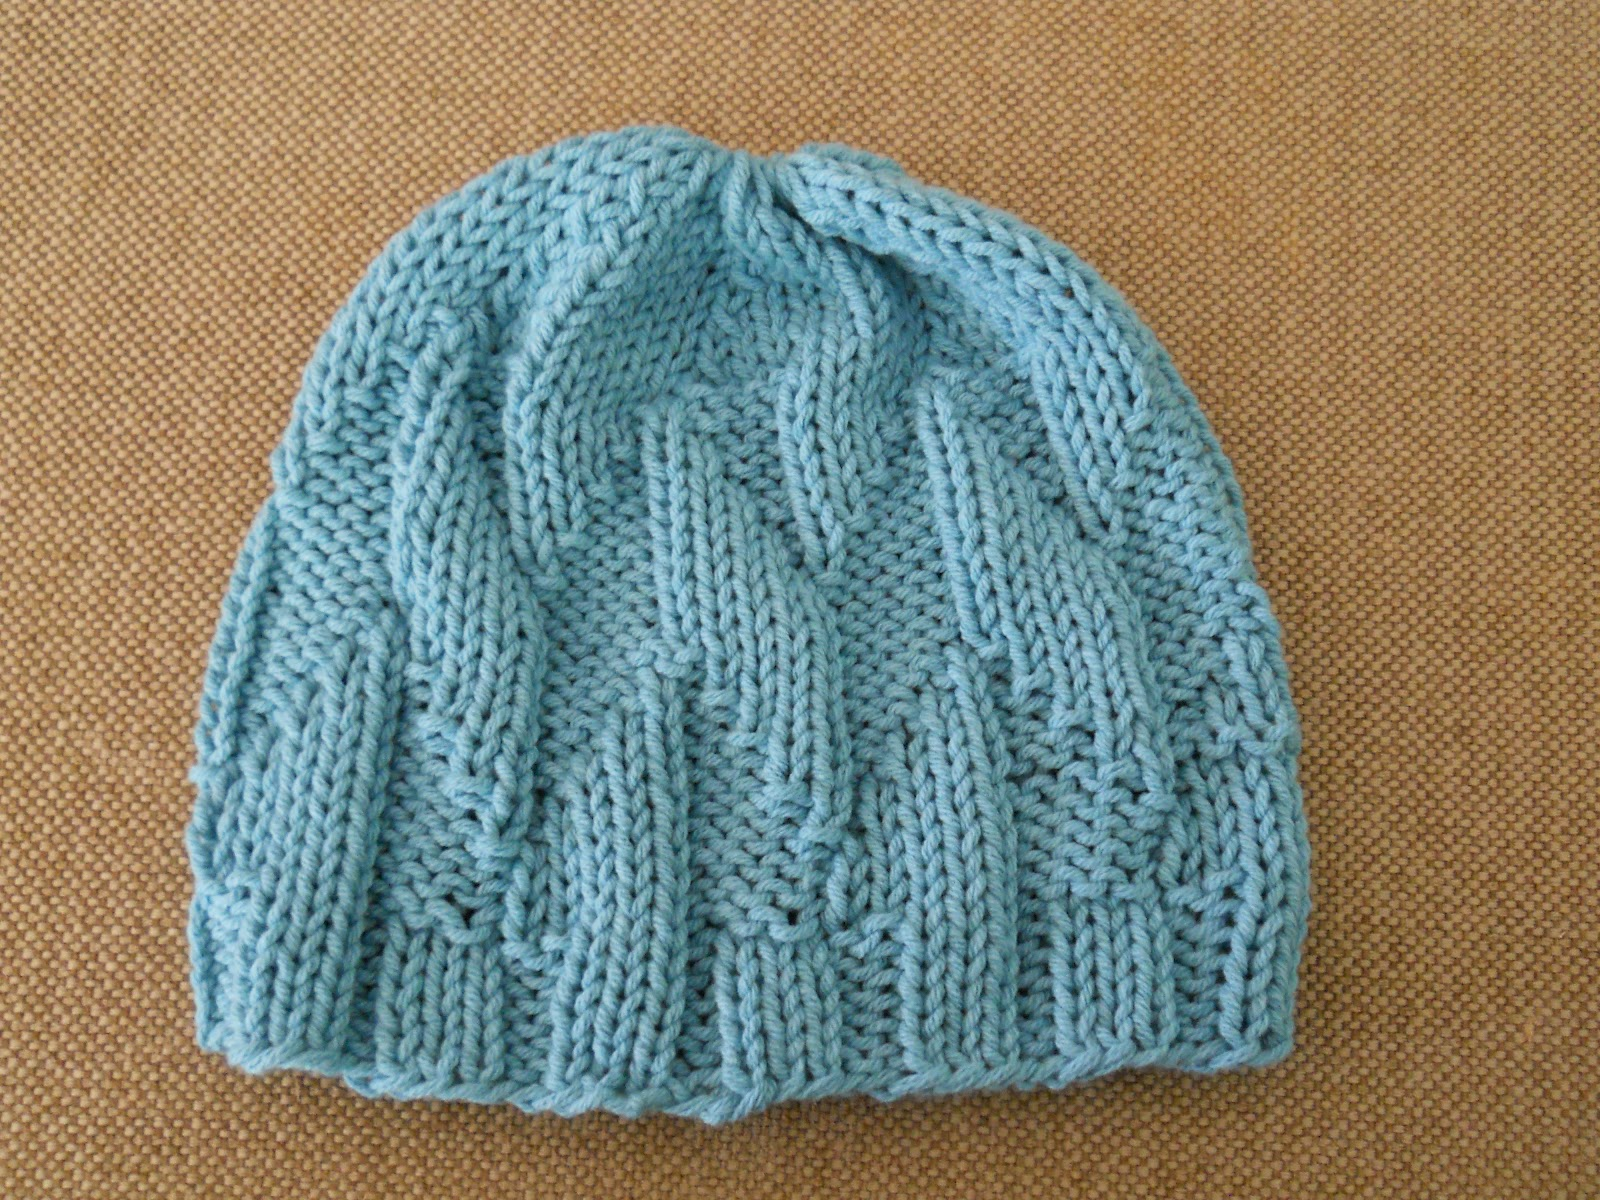 Knitting with Schnapps: Introducing the Waves of Hope Chemo Cap!